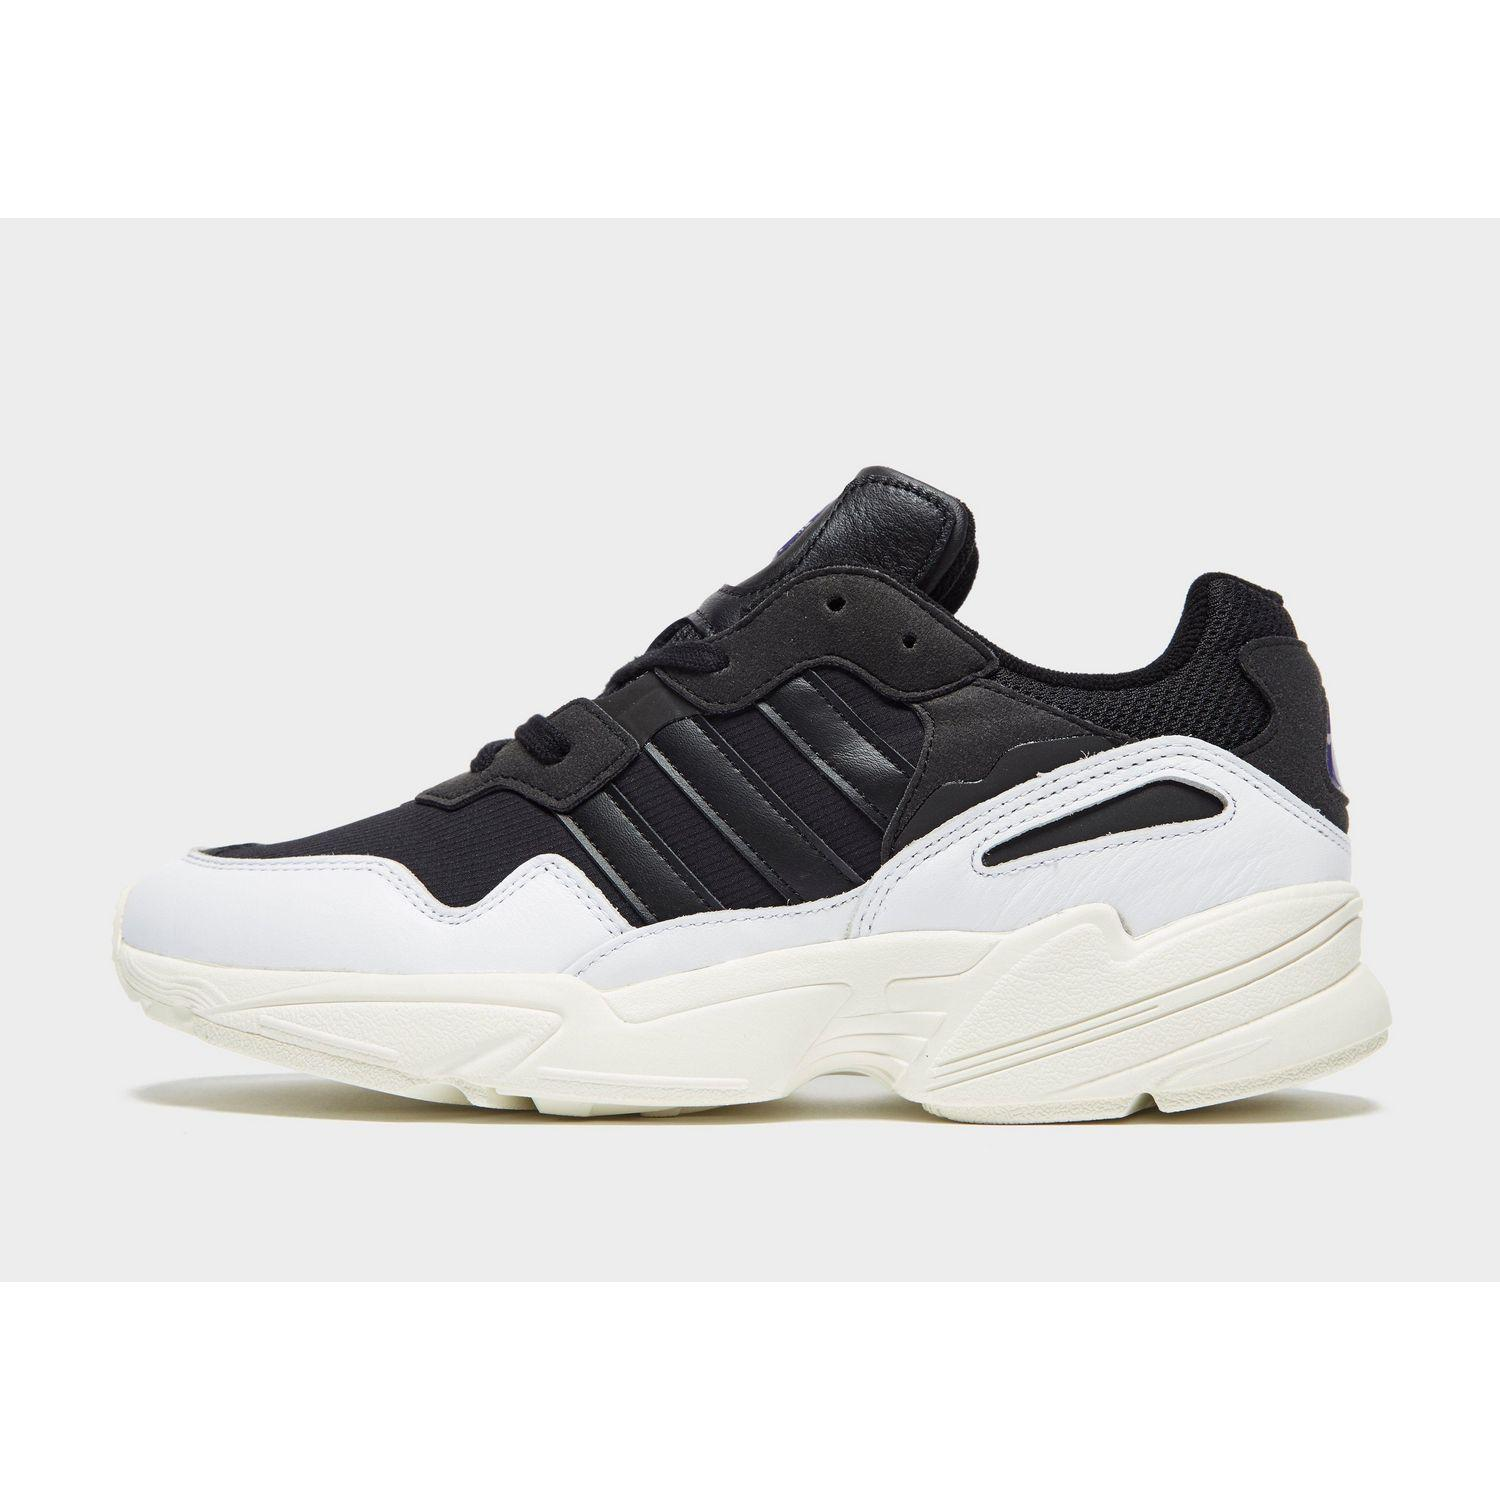 2d777be725d9a adidas Originals Yung 96 in Black for Men - Lyst